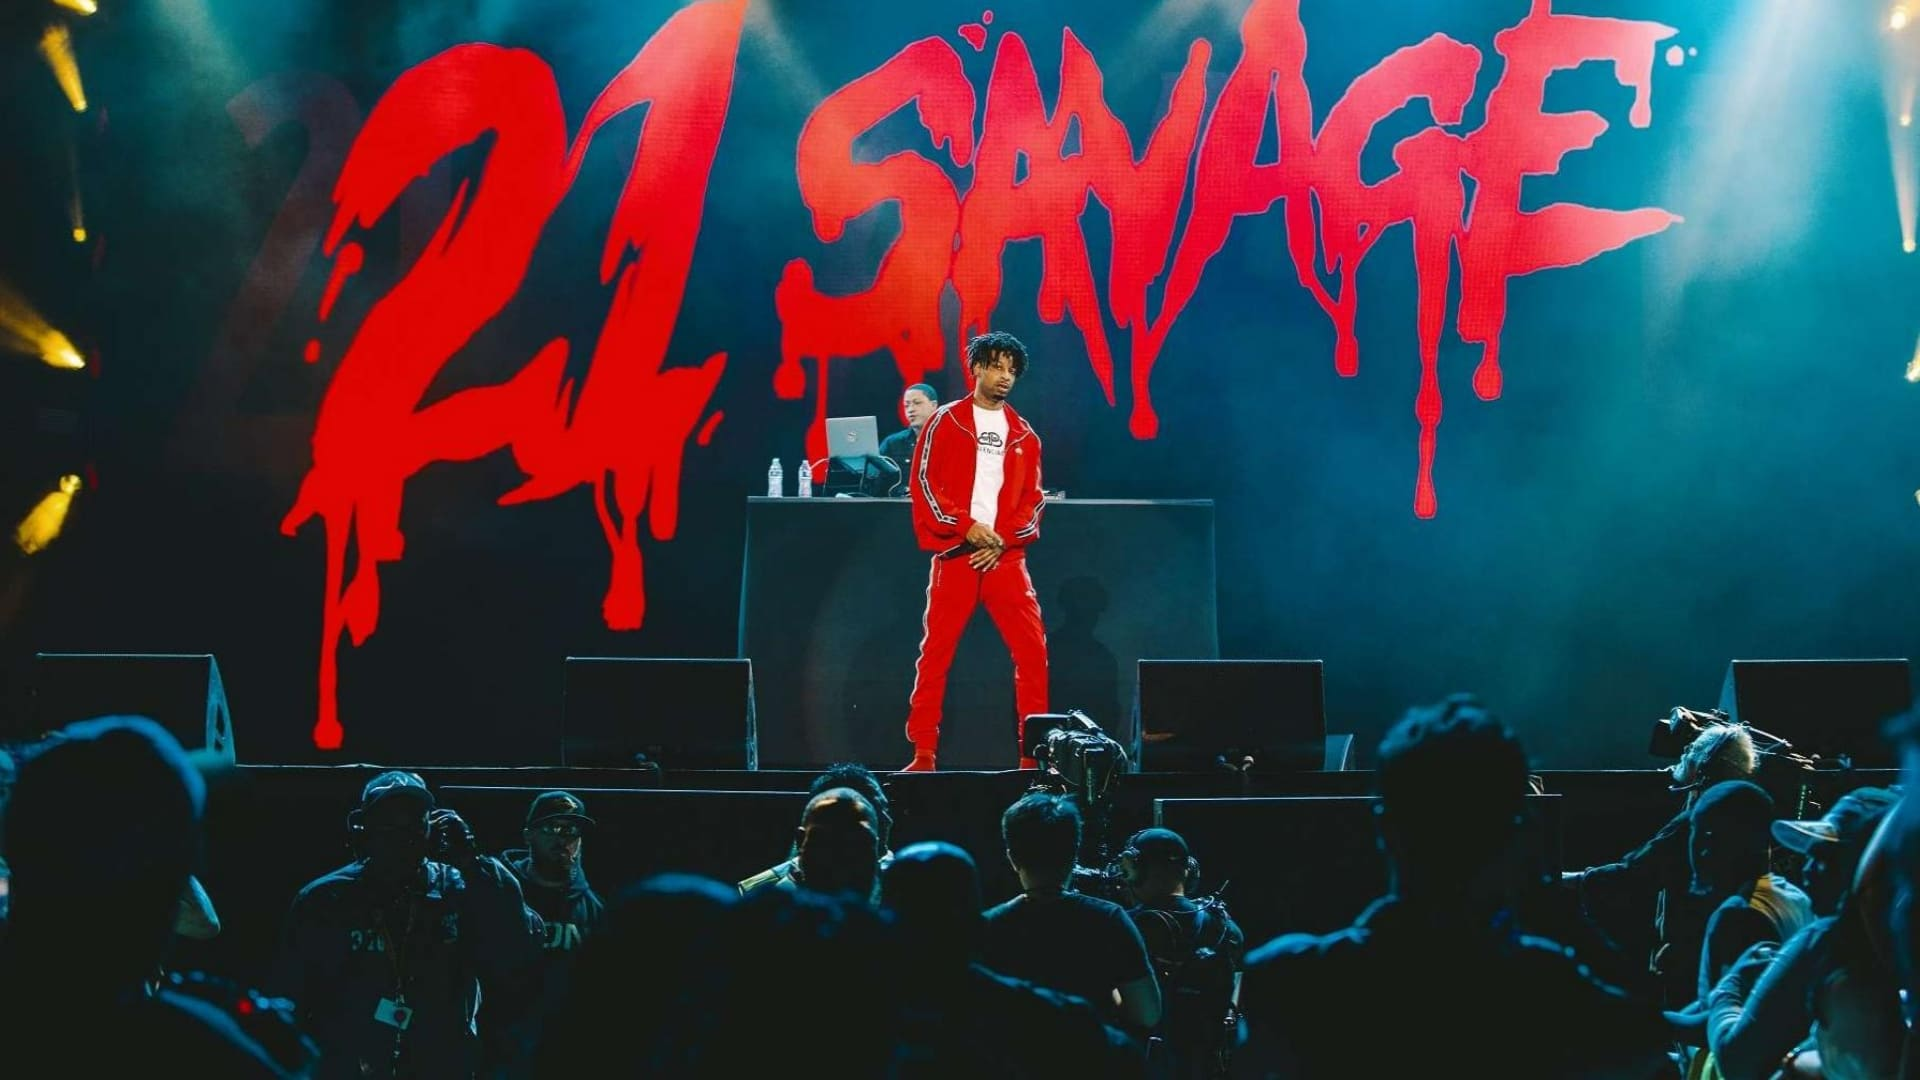 21 savage wallpapers download new hd pictures 2020 getty wallpapers